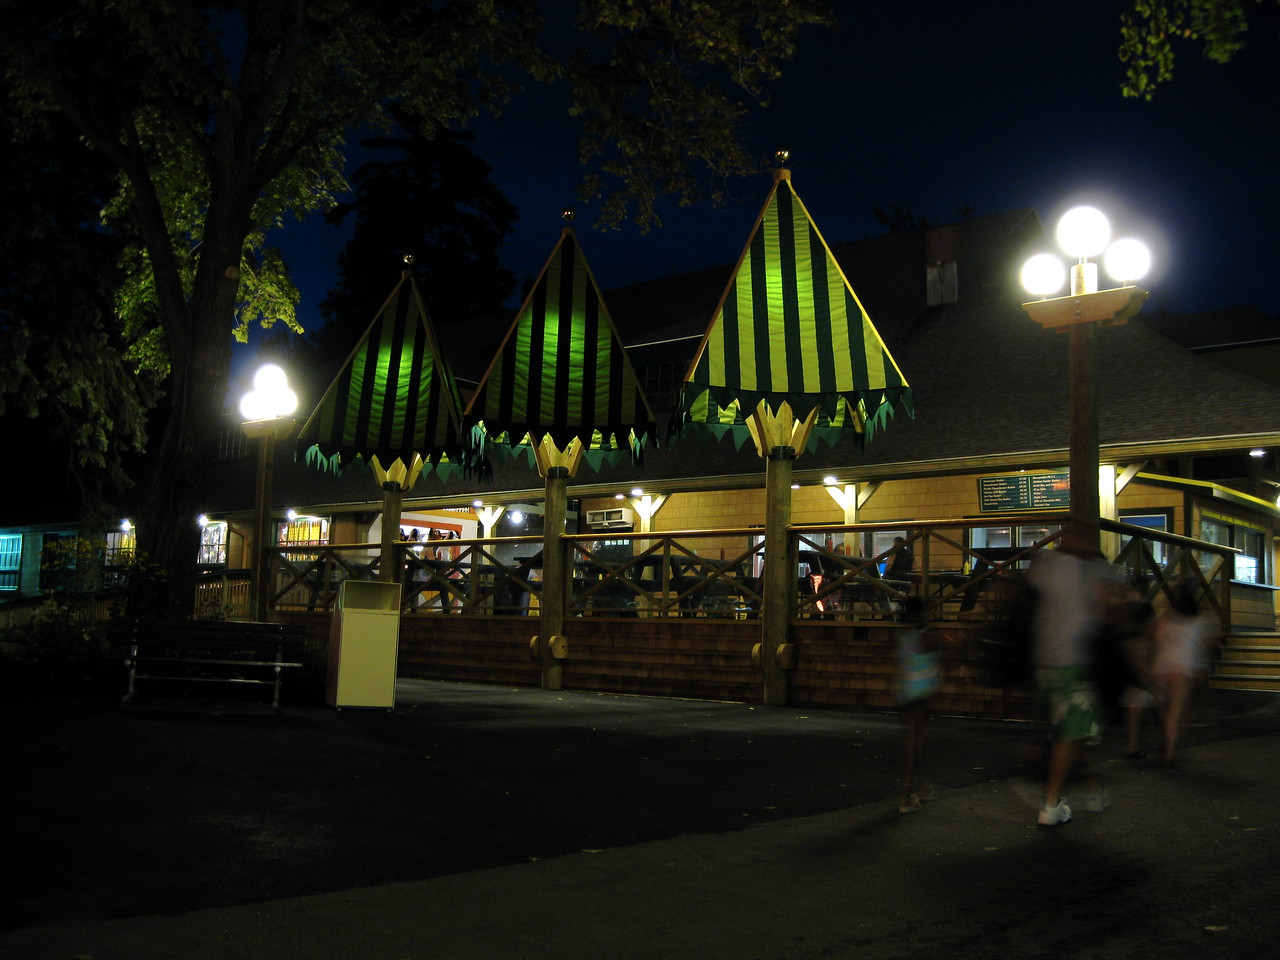 The Jackpot Casino food stand at night.